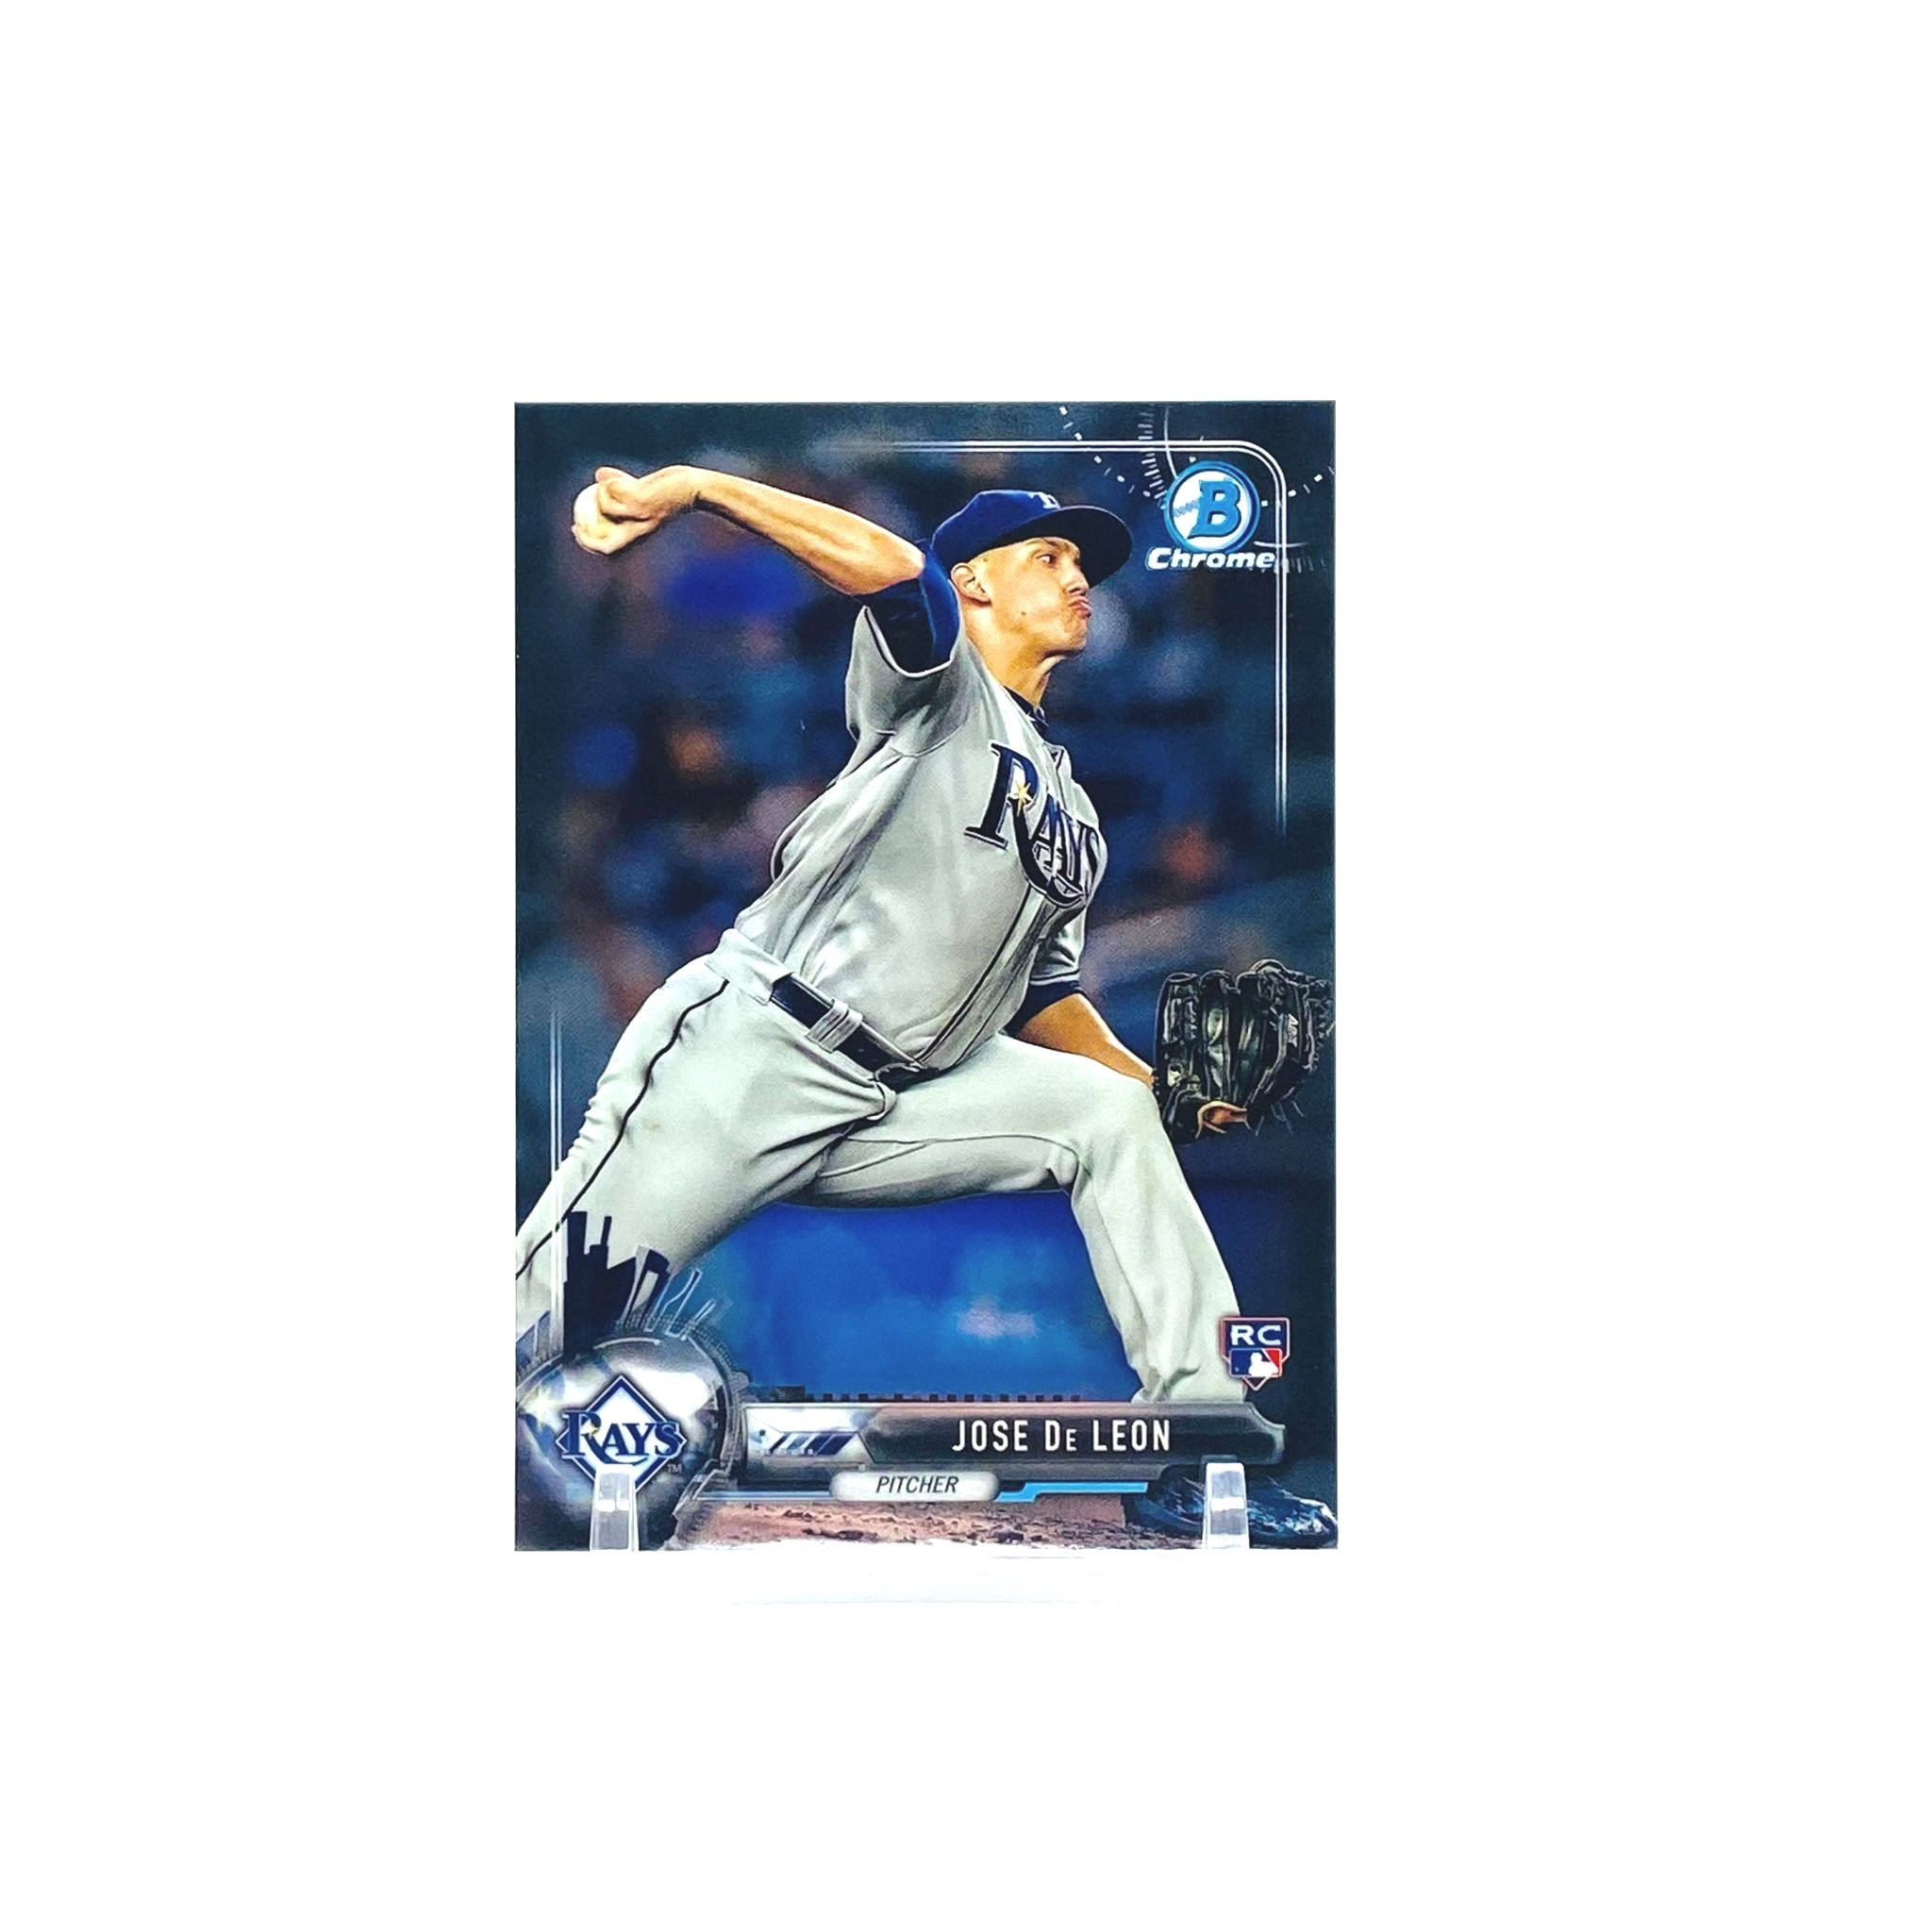 2017 Bowman Chrome Jose De Leon Photo Variation Rookie Card Tampa Bay Rays